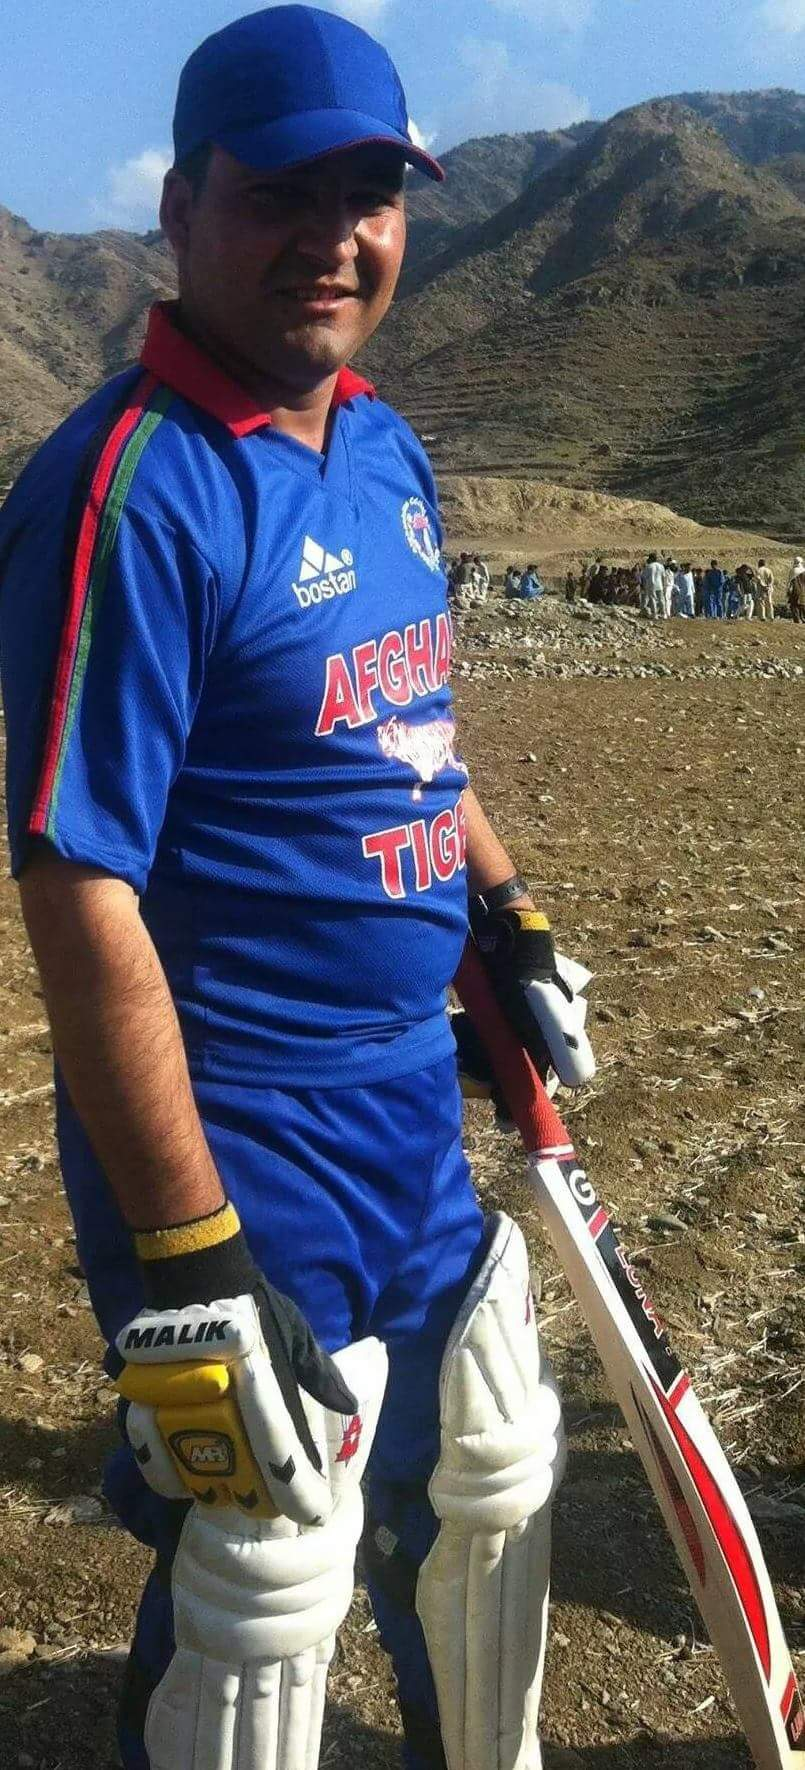 Archi in his Afghan Tigers cricket kit